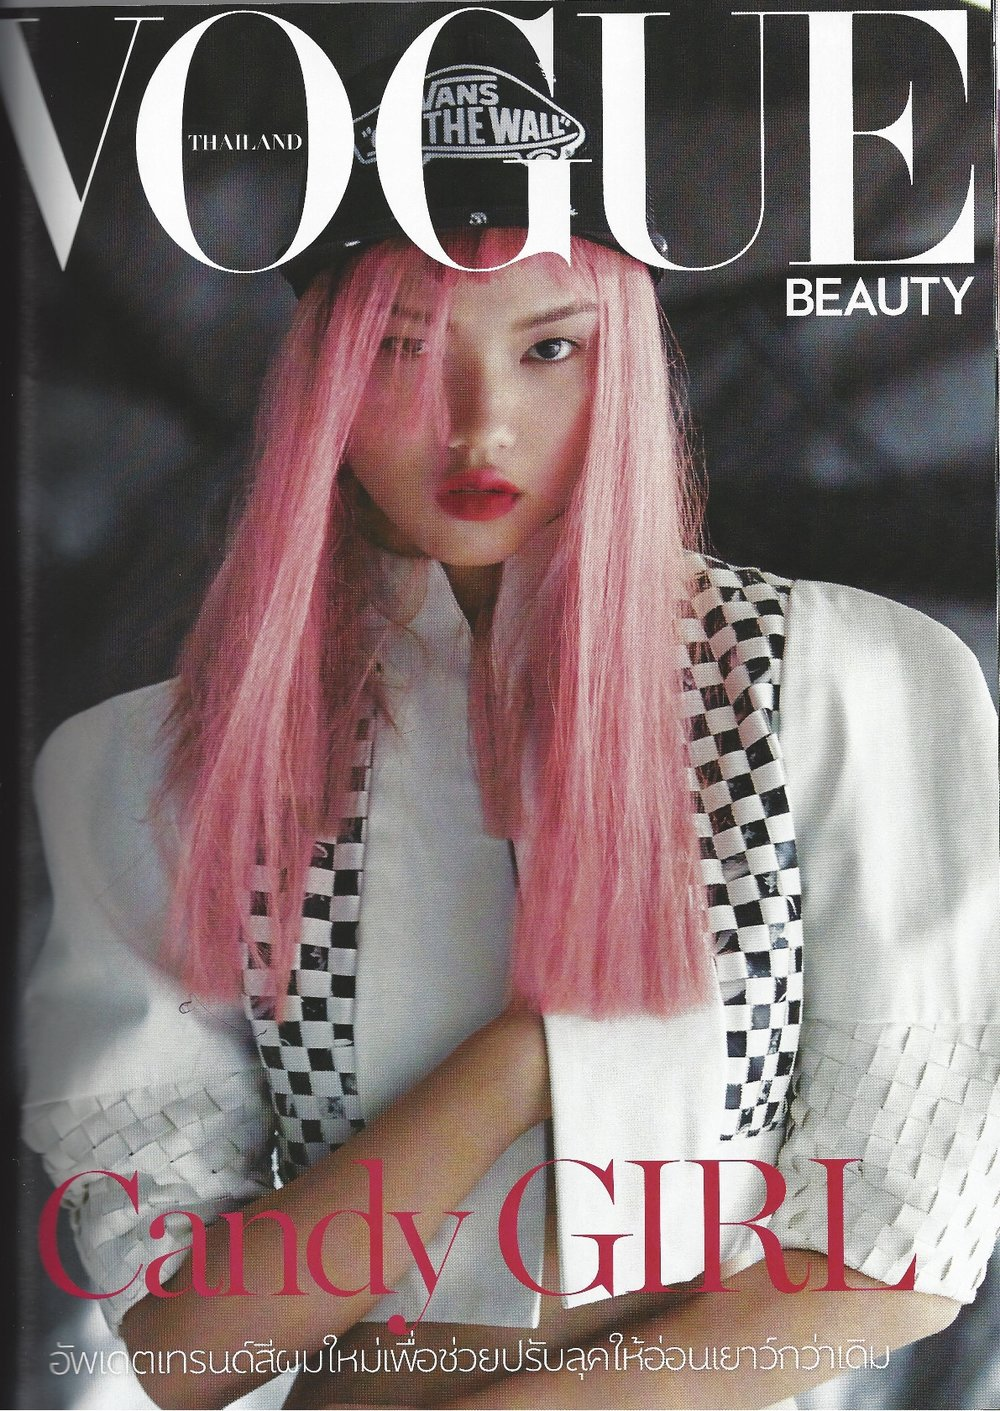 vogue_th cvr0013.jpg